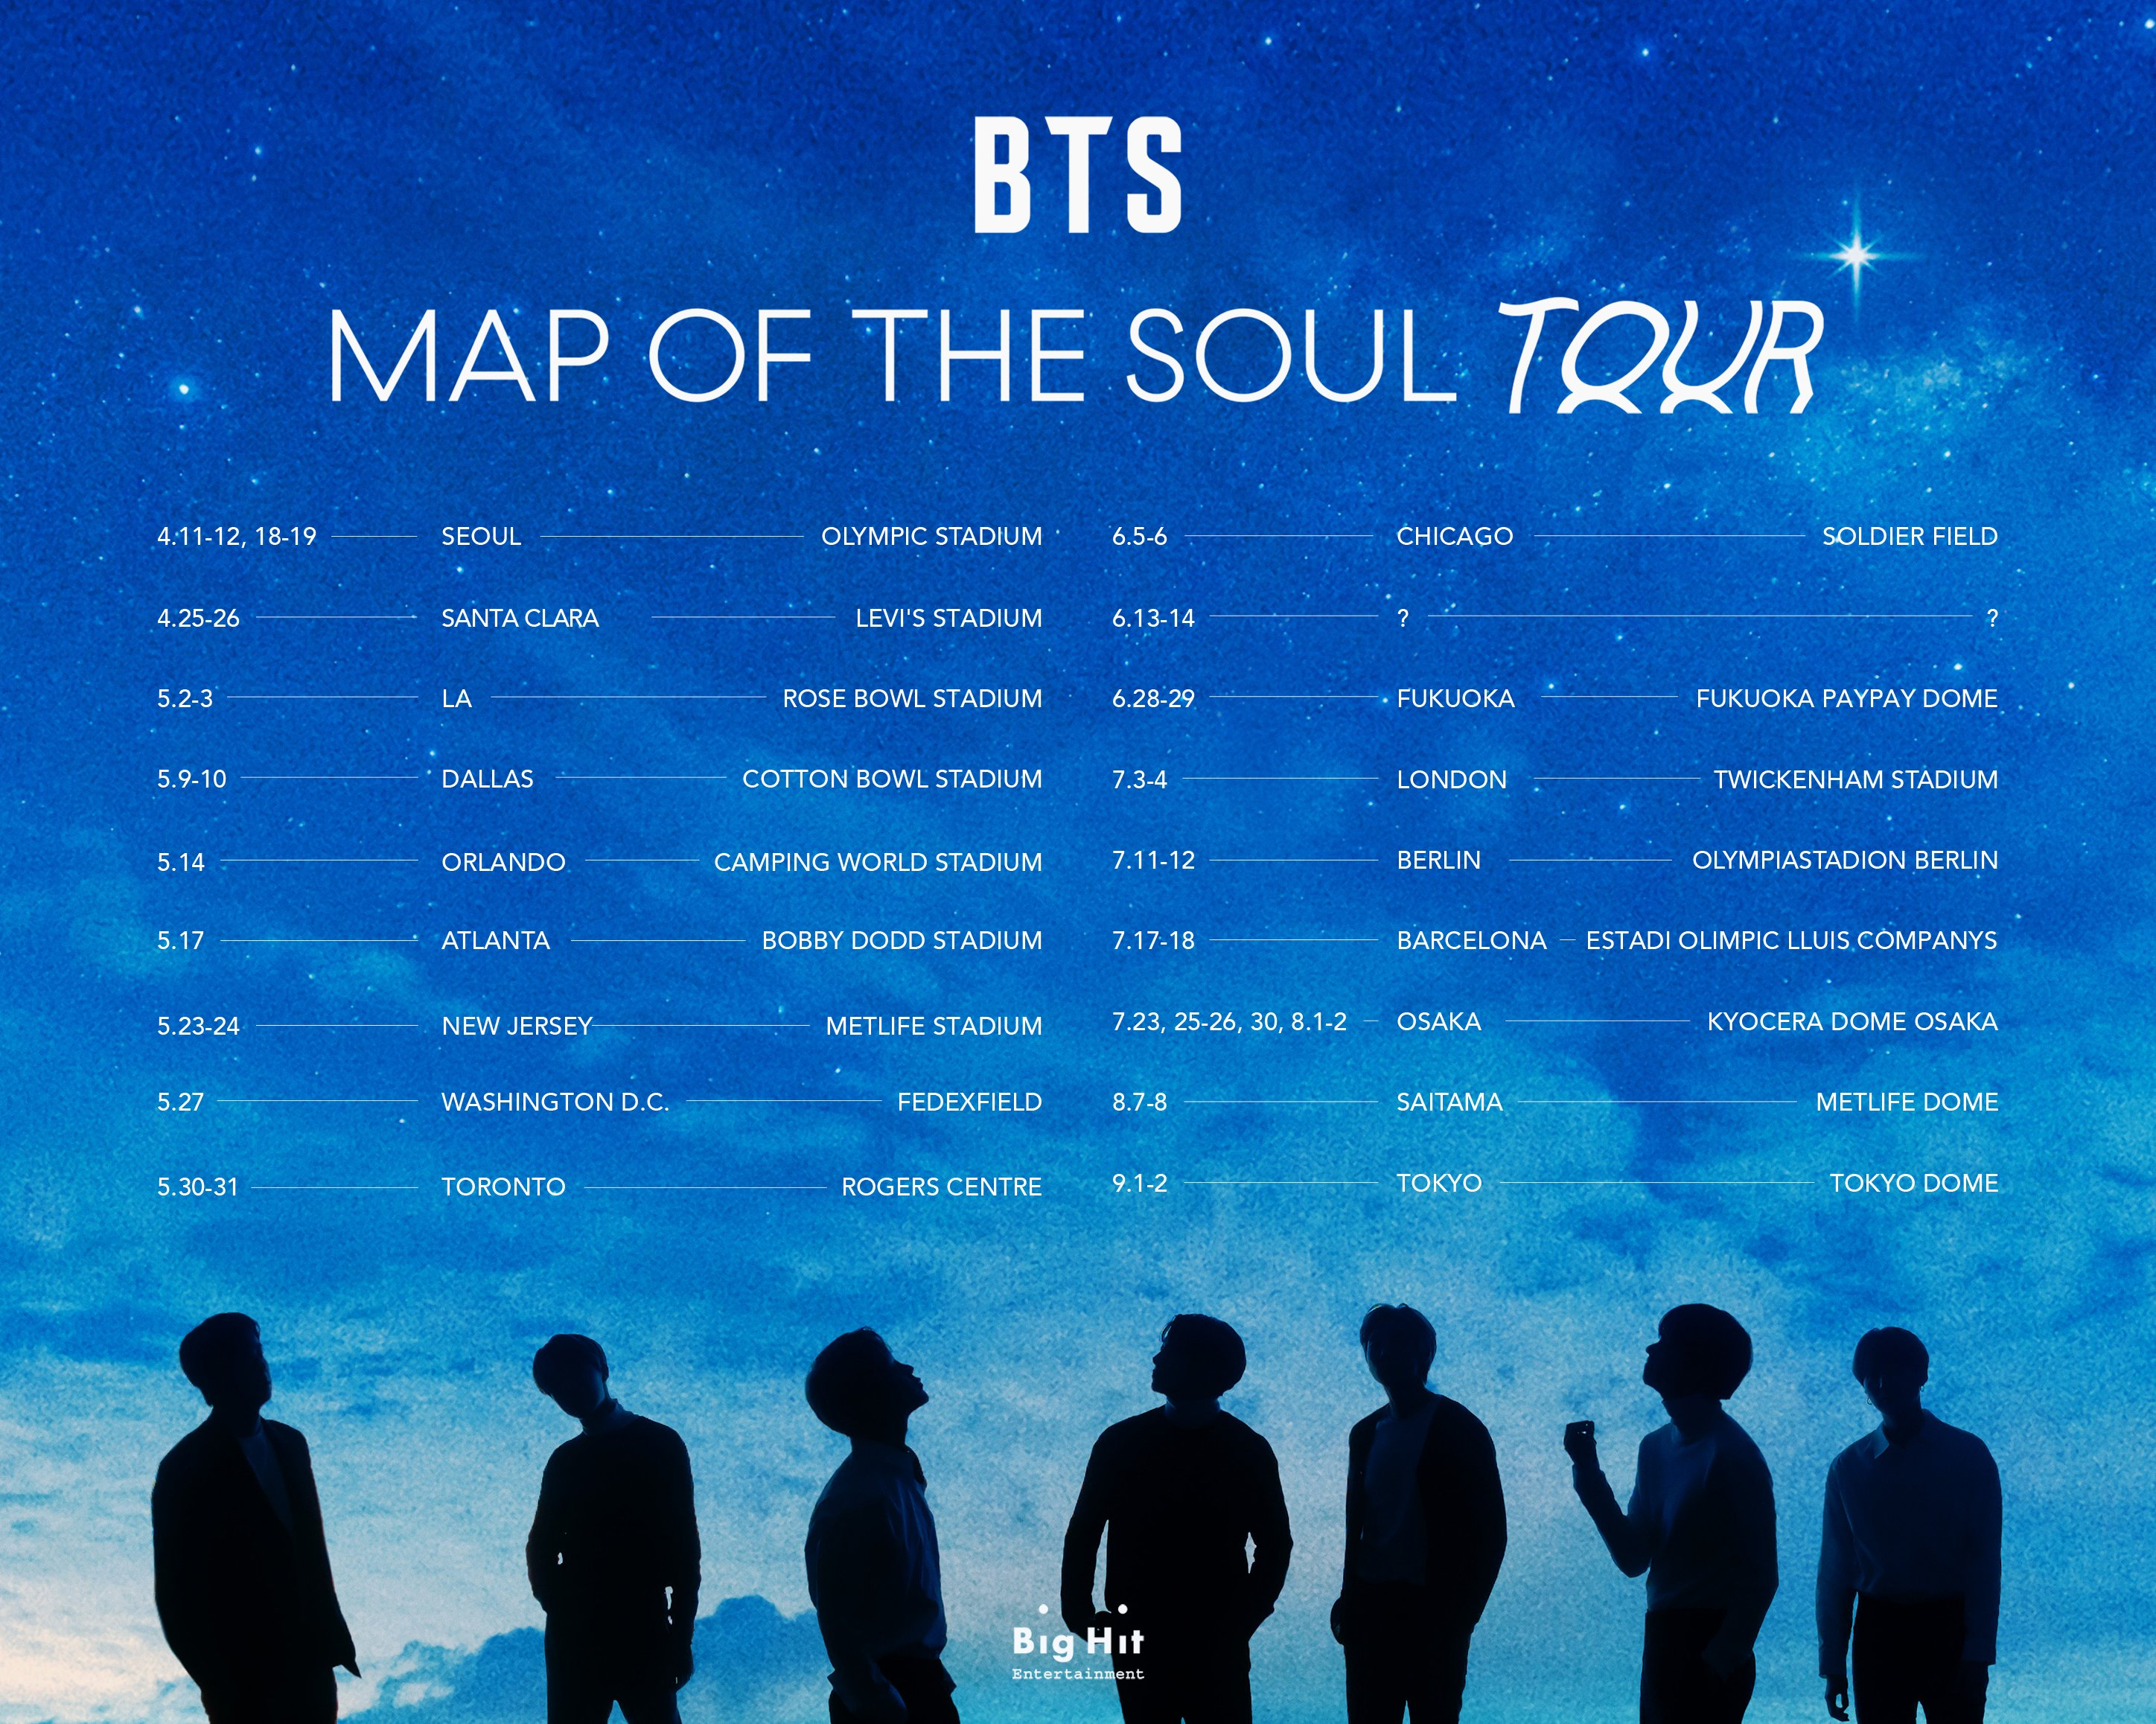 Jadwal Tour Map of The Soul